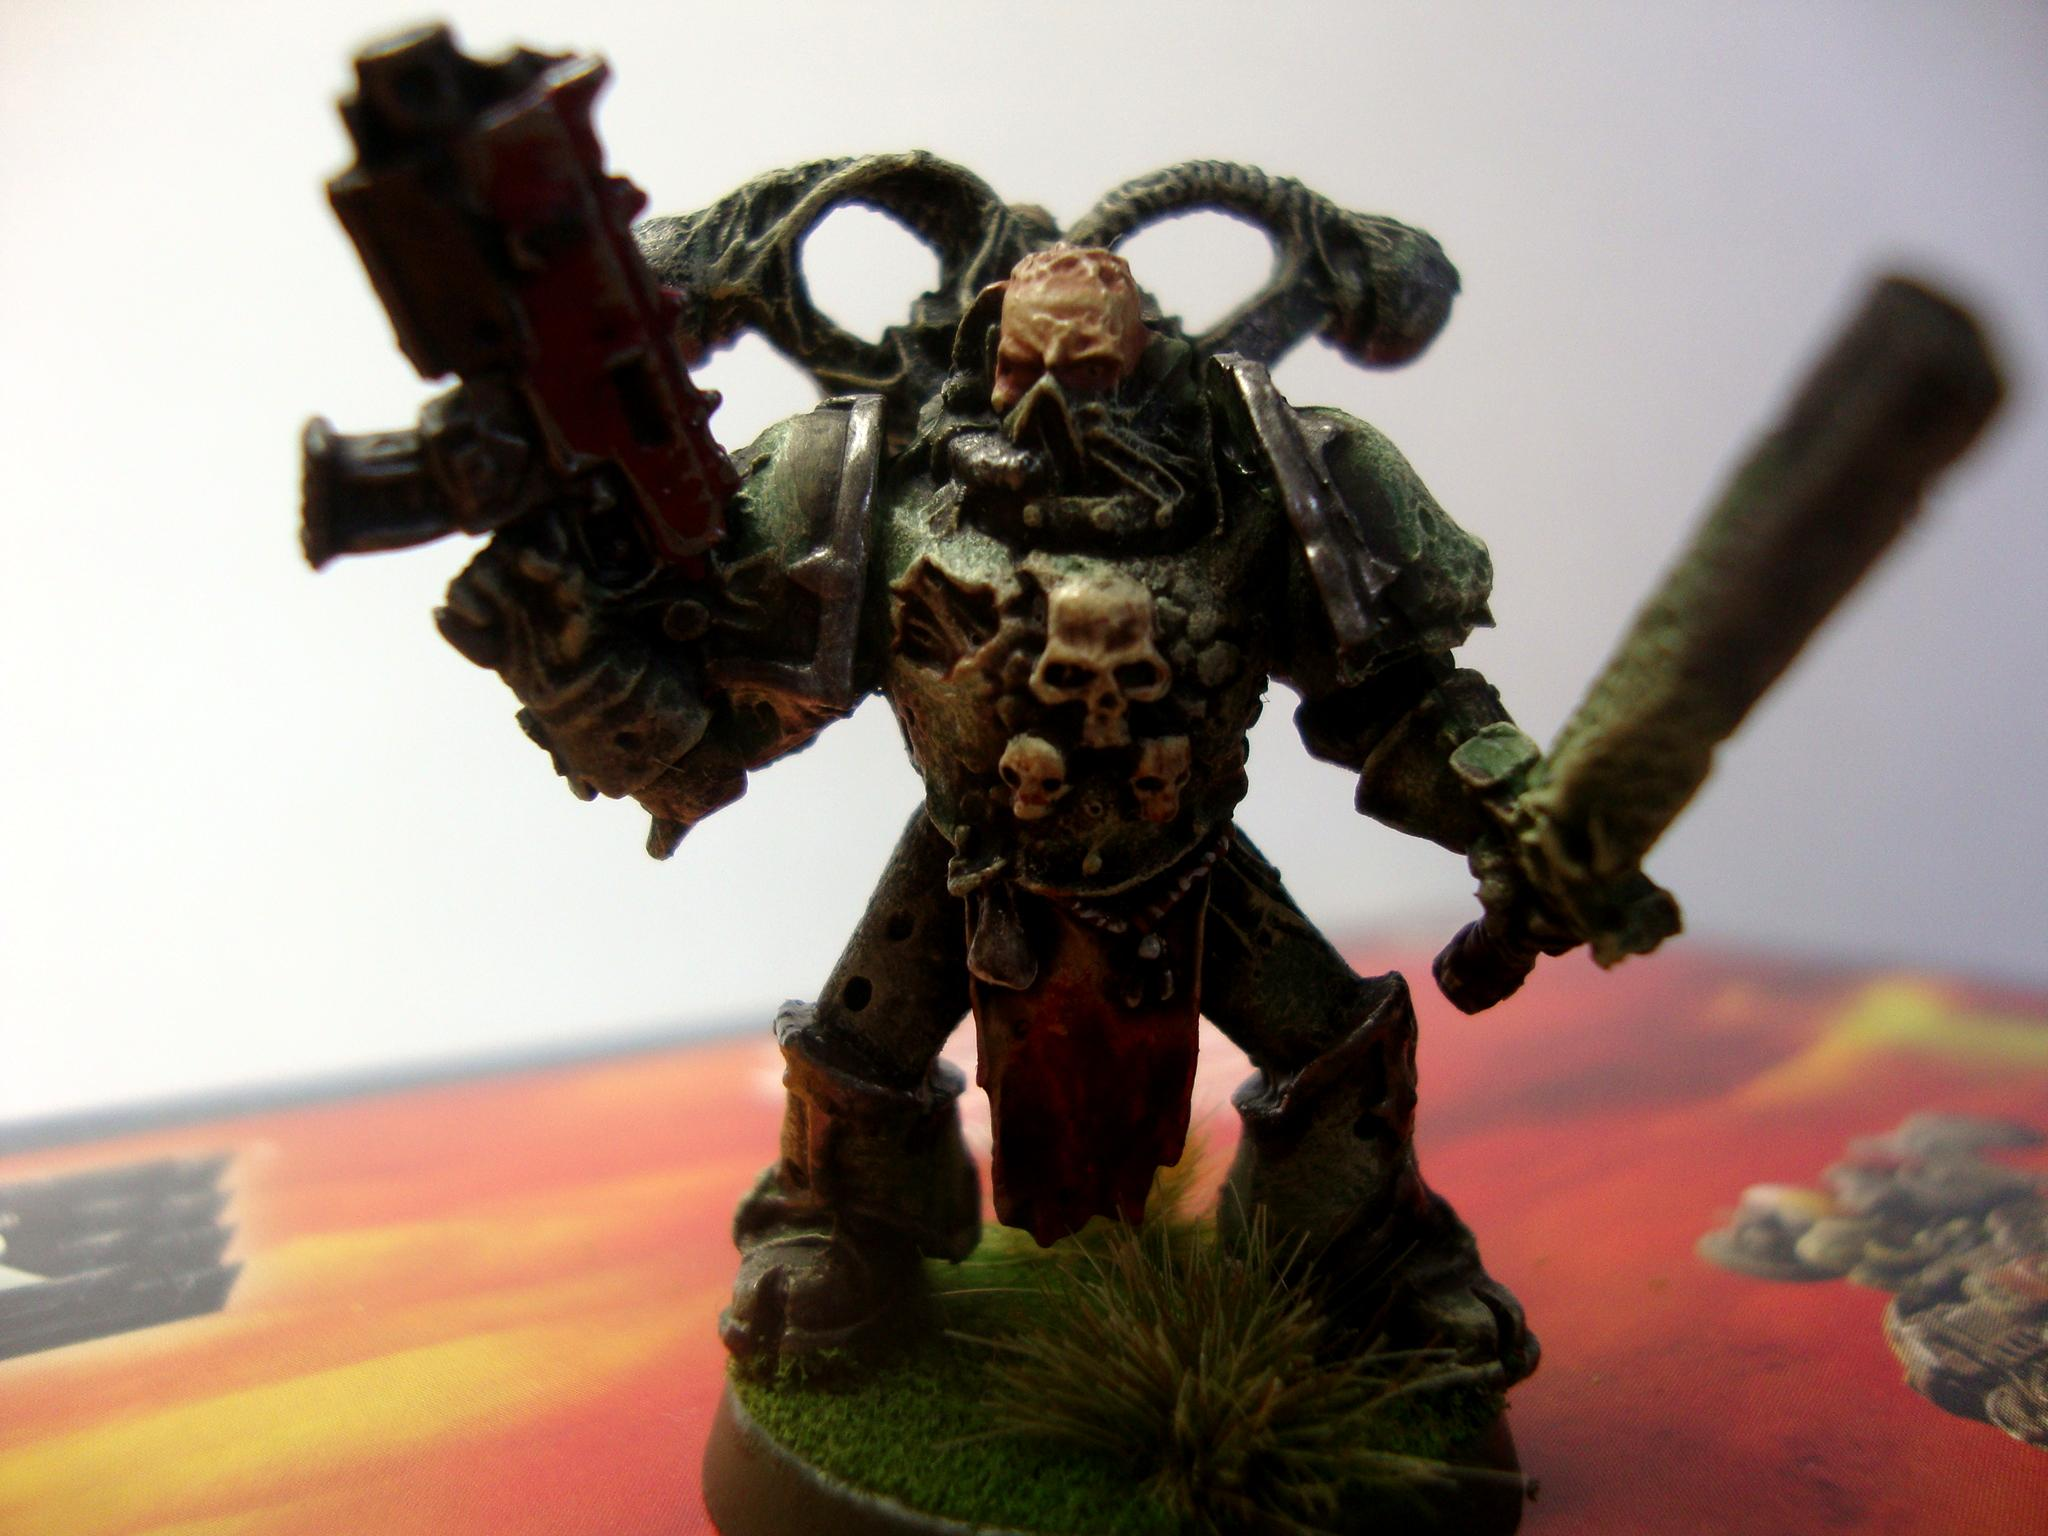 Bolter, Champion, Chaos, Death Guard, Destroyer Plague, Disease, Gore, Mortarion, Mutation, Nurgle, Plague, Plague Marines, Space Marines, Typhus, Warhammer 40,000